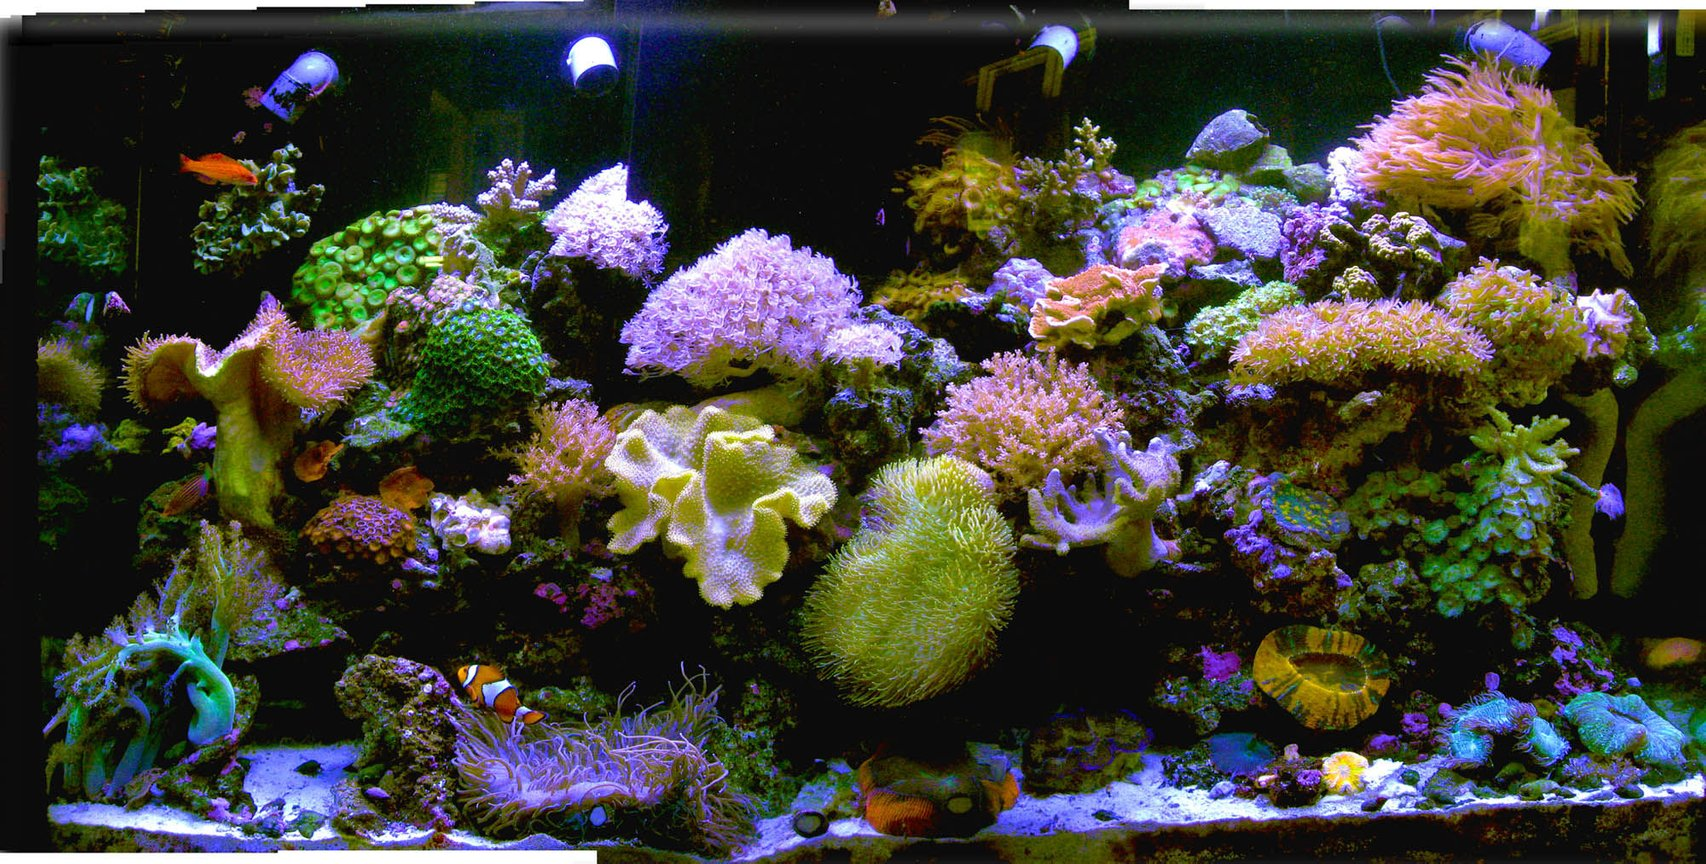 140 gallons reef tank (mostly live coral and fish) - my new old tank after the house got hit by lightening and the lights didnt work for 2 weeks when we were out of town(of course) and all the fish were electrocuted :-( the large corals survived